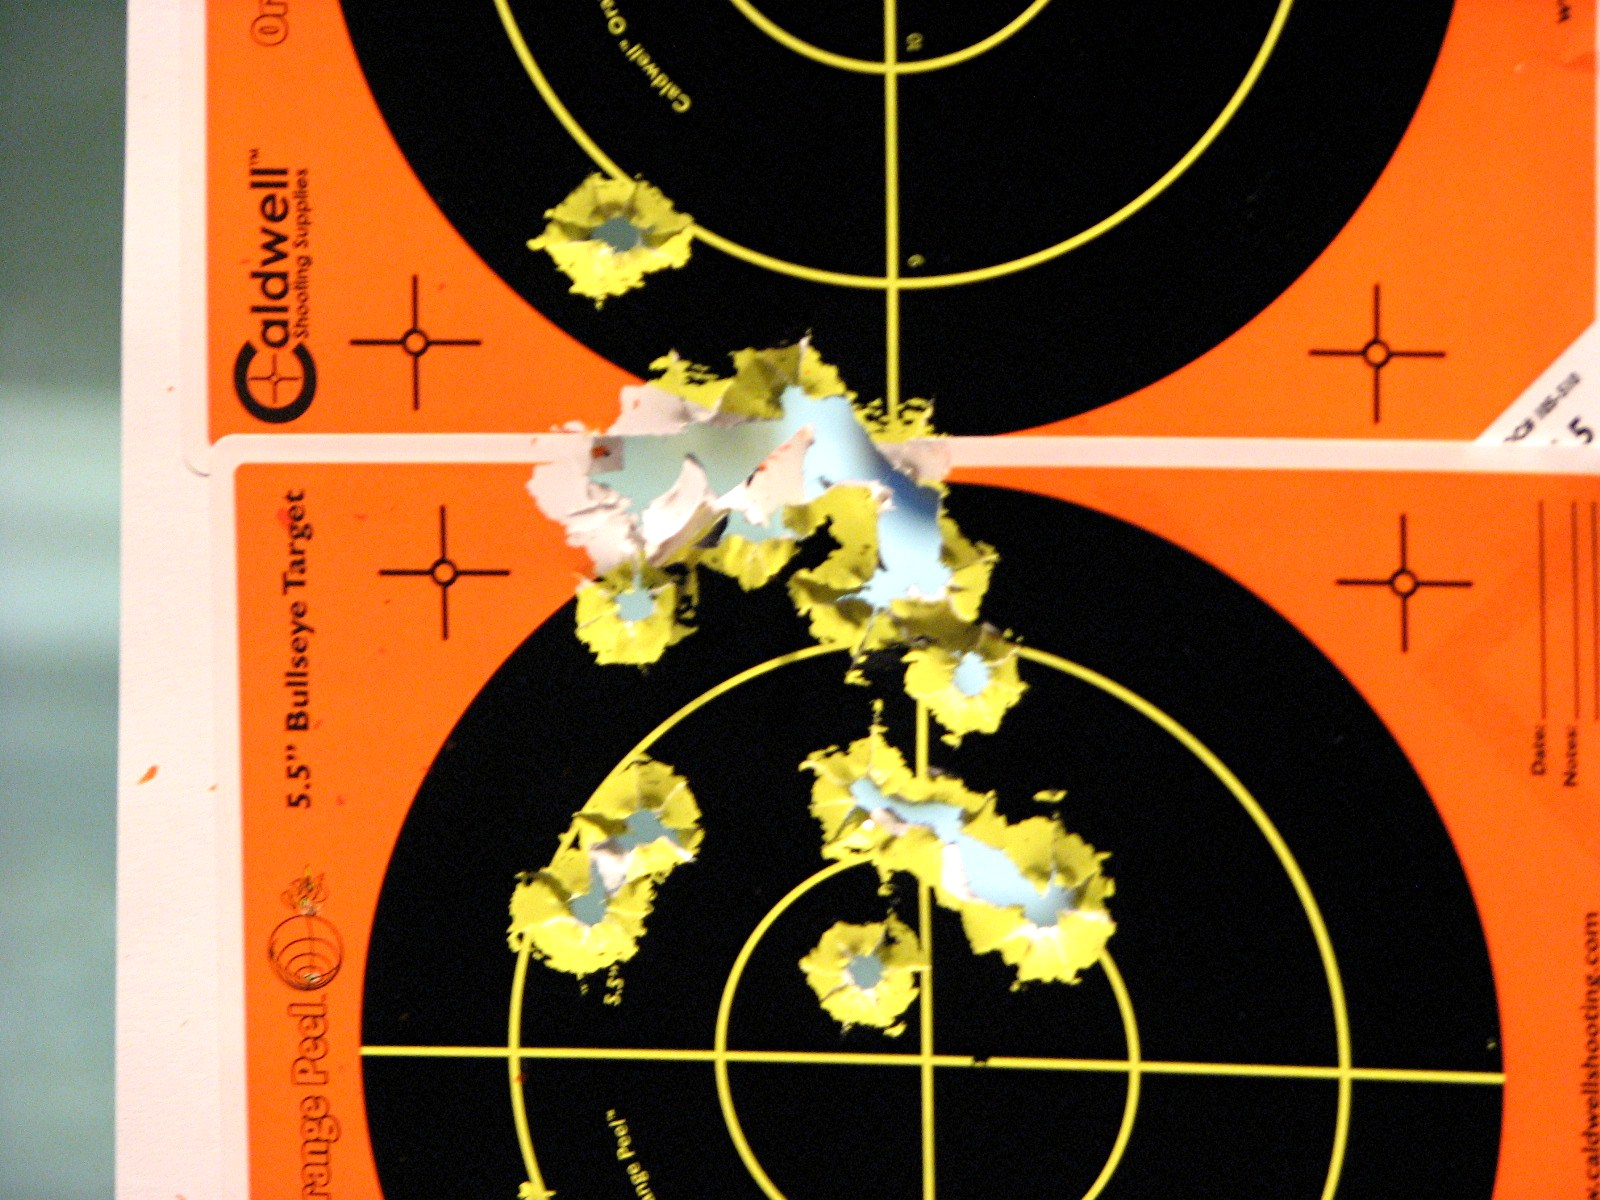 The Springfield Armory 5.25 is highly accurate and makes shooting easier